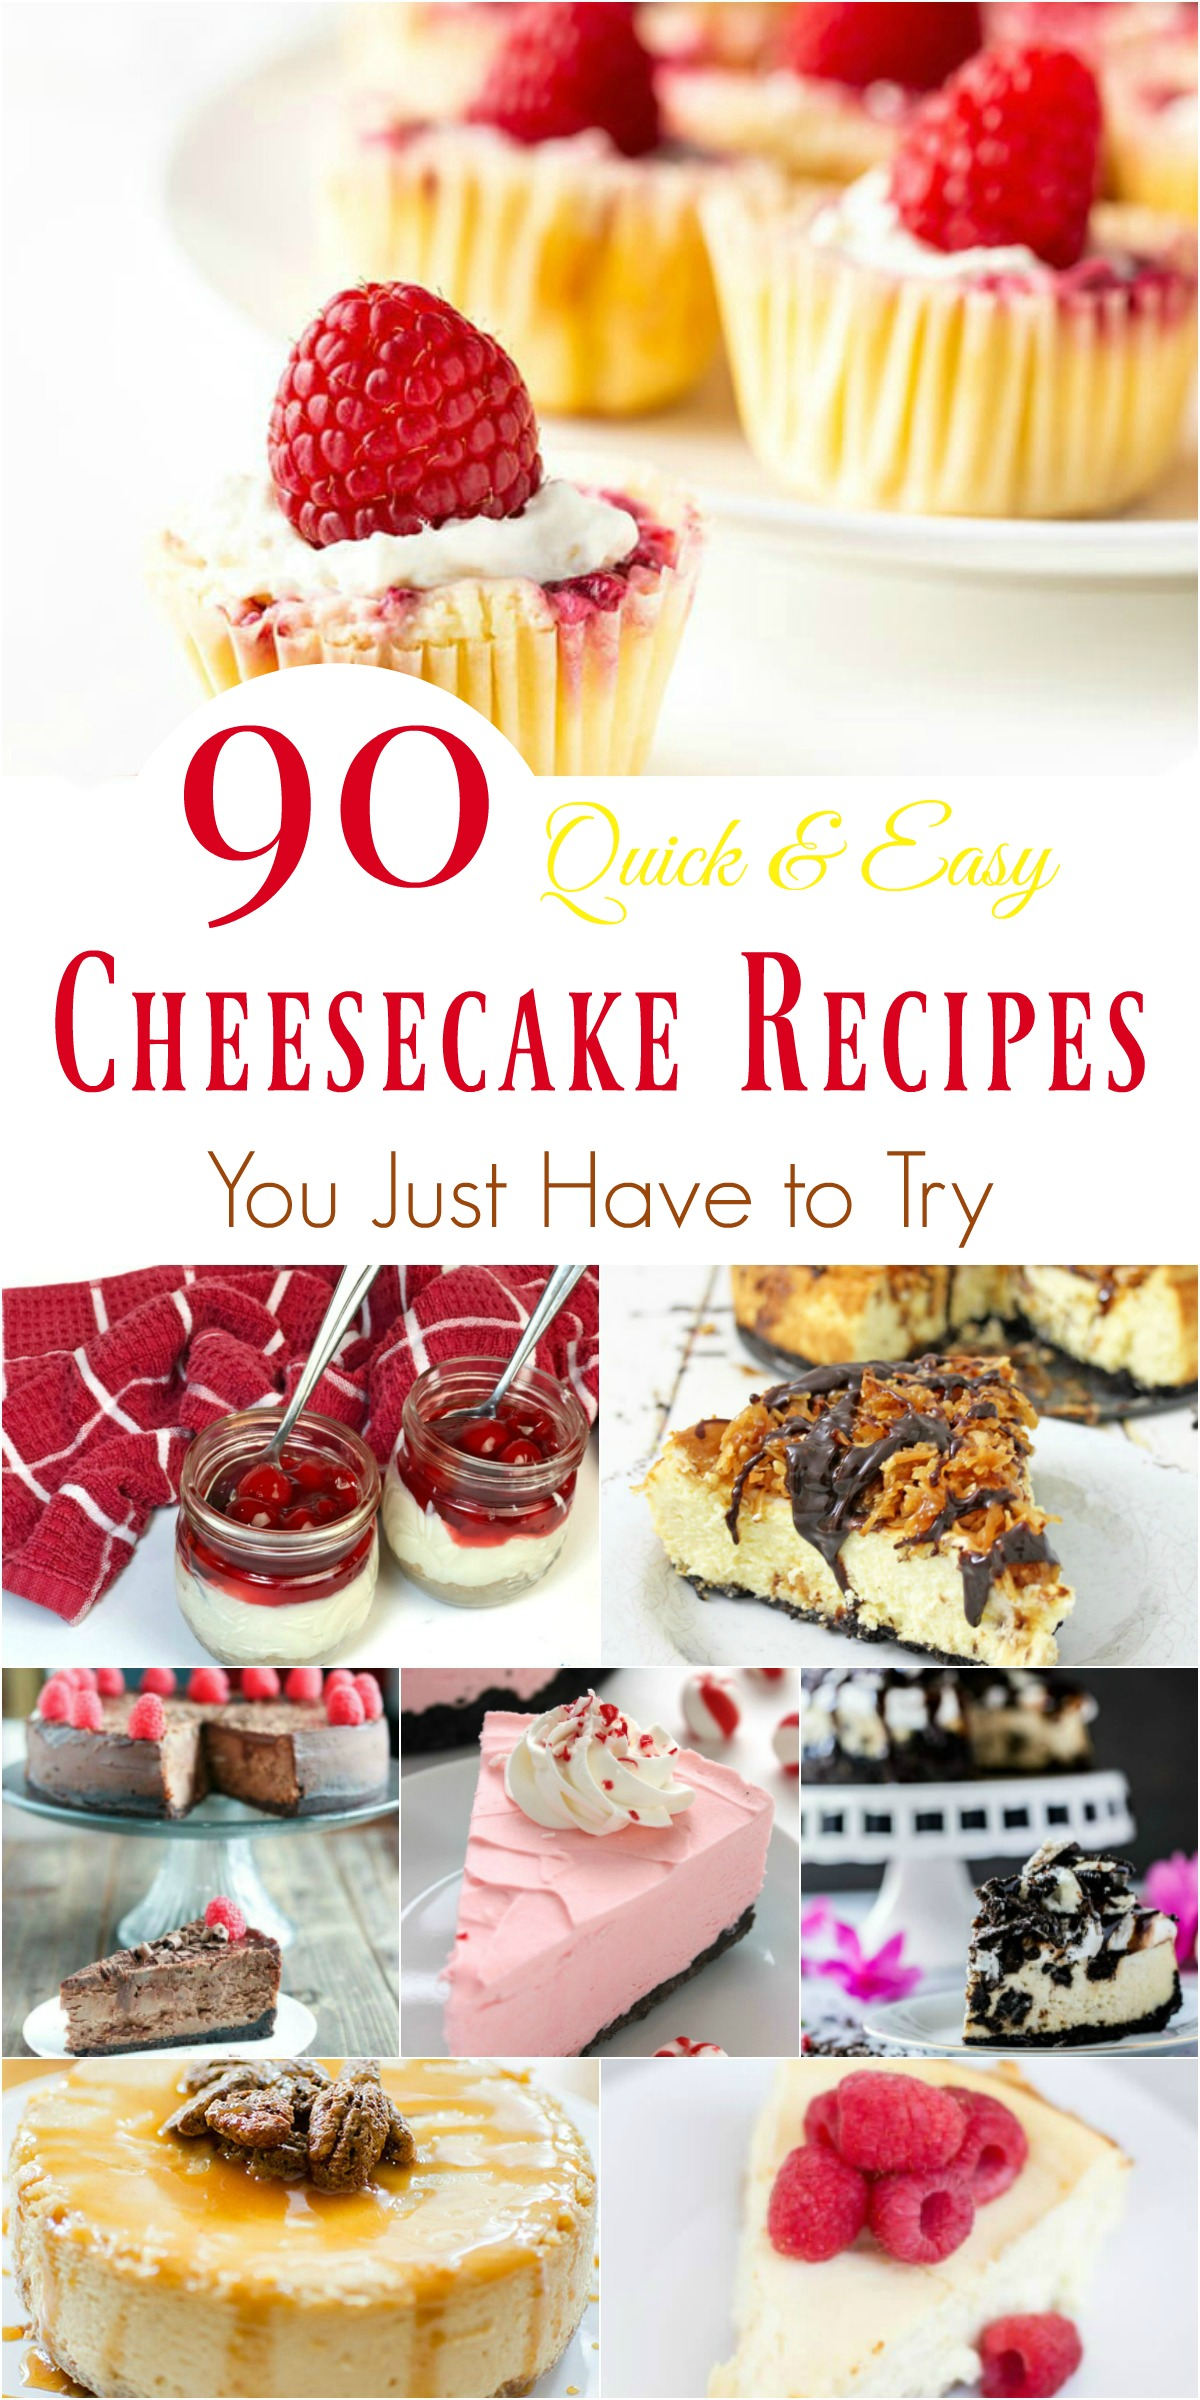 90 Quick & Easy Cheesecake Recipes You Just Have to Try